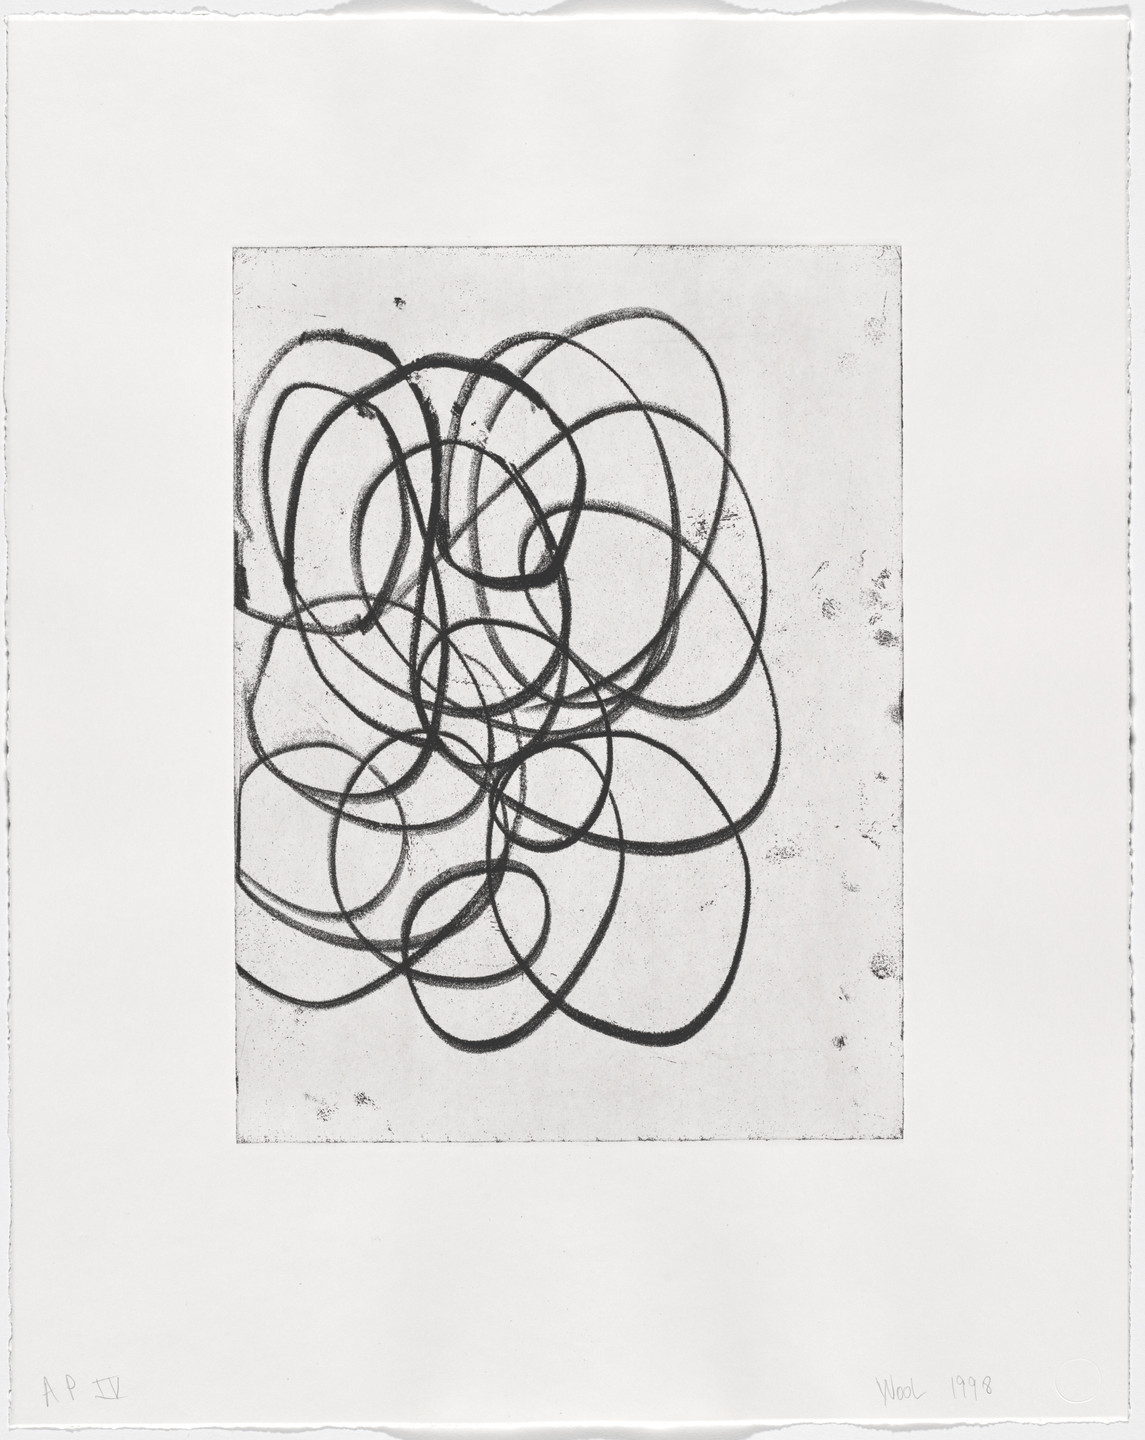 Christopher Wool. Untitled. 1998